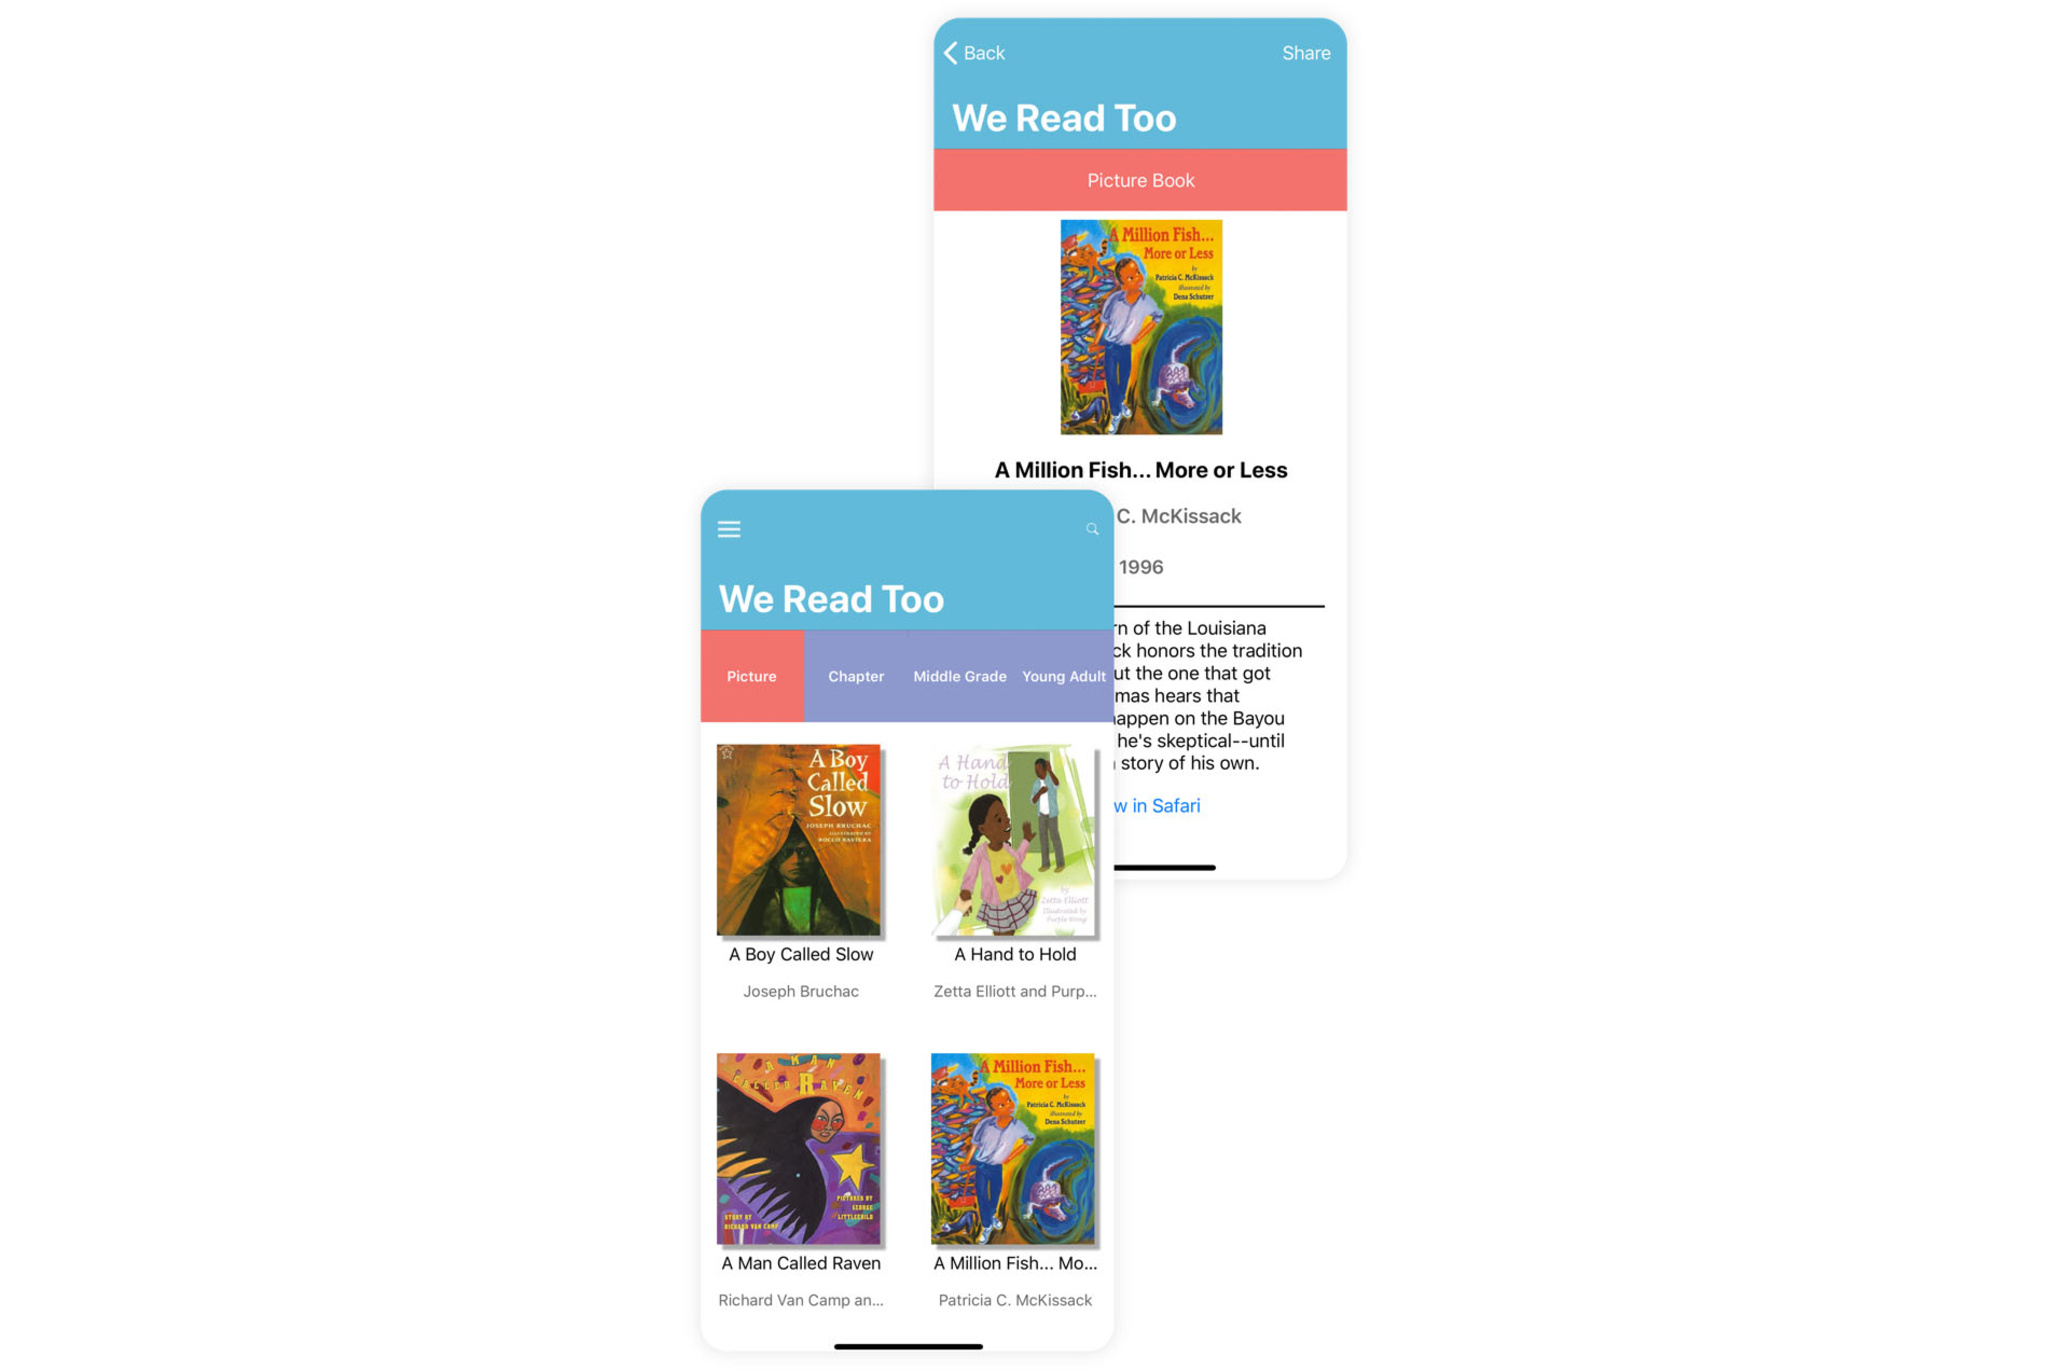 We Read Too has become one of the most comprehensive catalogs of children's books by writers of color, featuring characters of color.